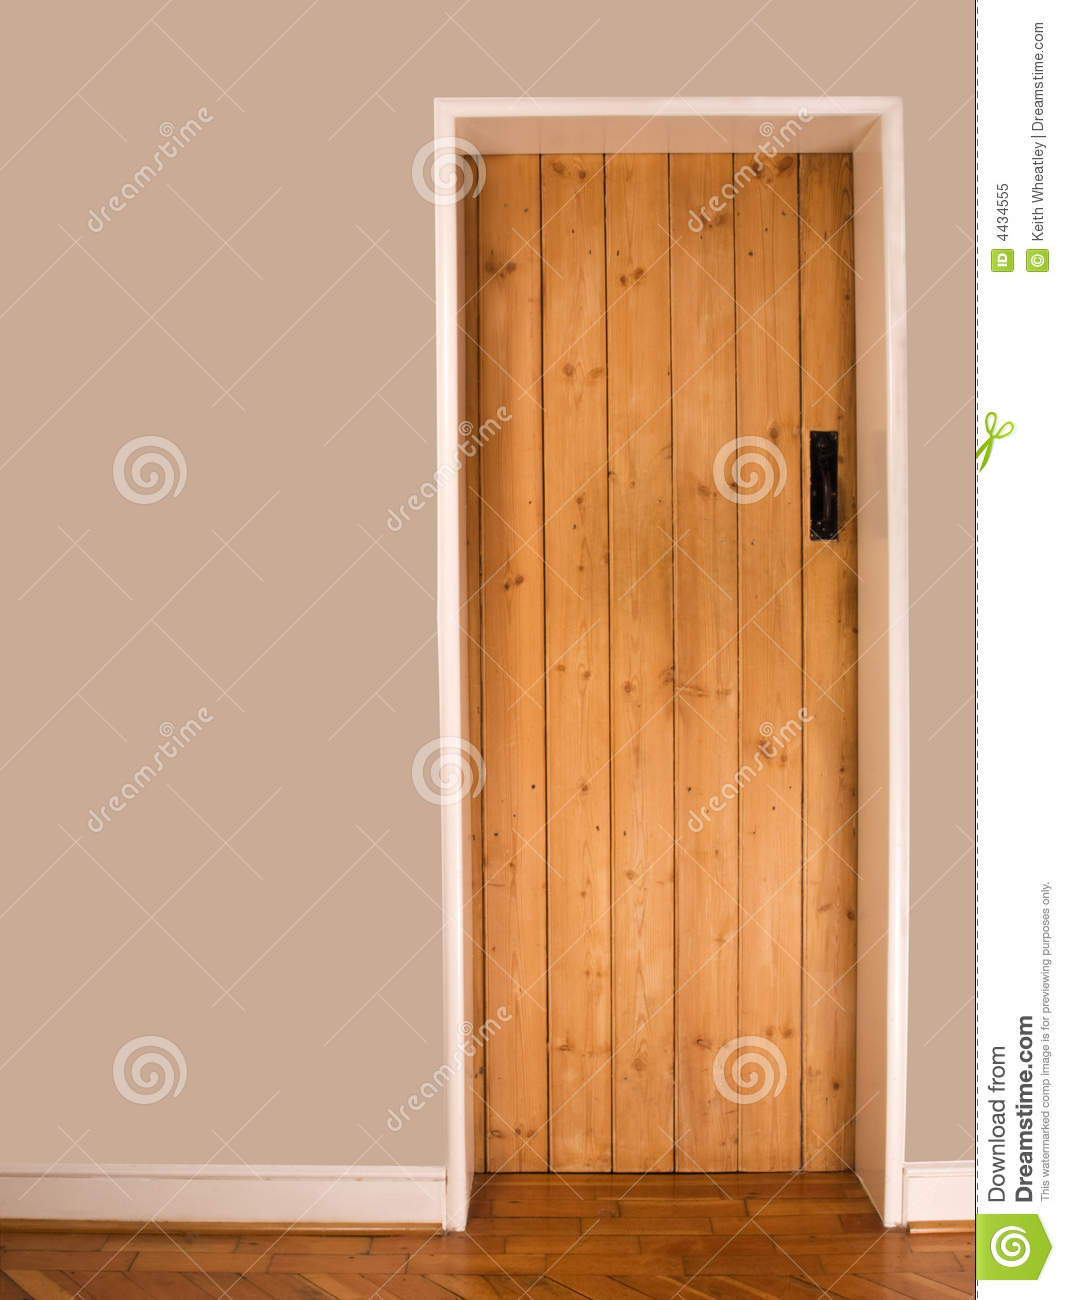 Old wooden interior door stock image image of wooden for Hardwood interior doors